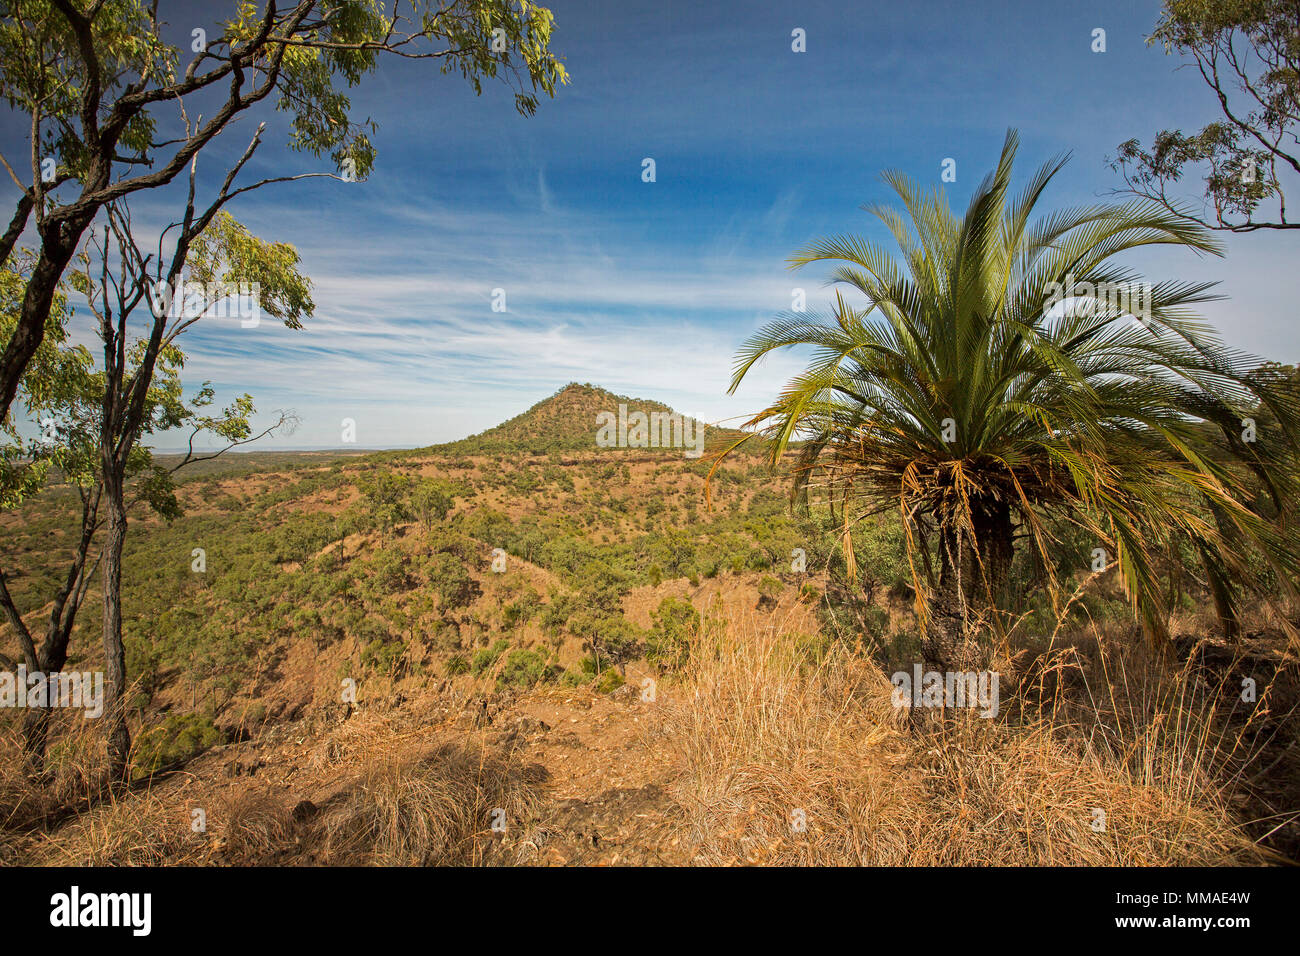 View of vast outback landscape of ranges and plains under blue sky from lookout at Minerva Hills National Park, near Springsure Queensland Australia Stock Photo